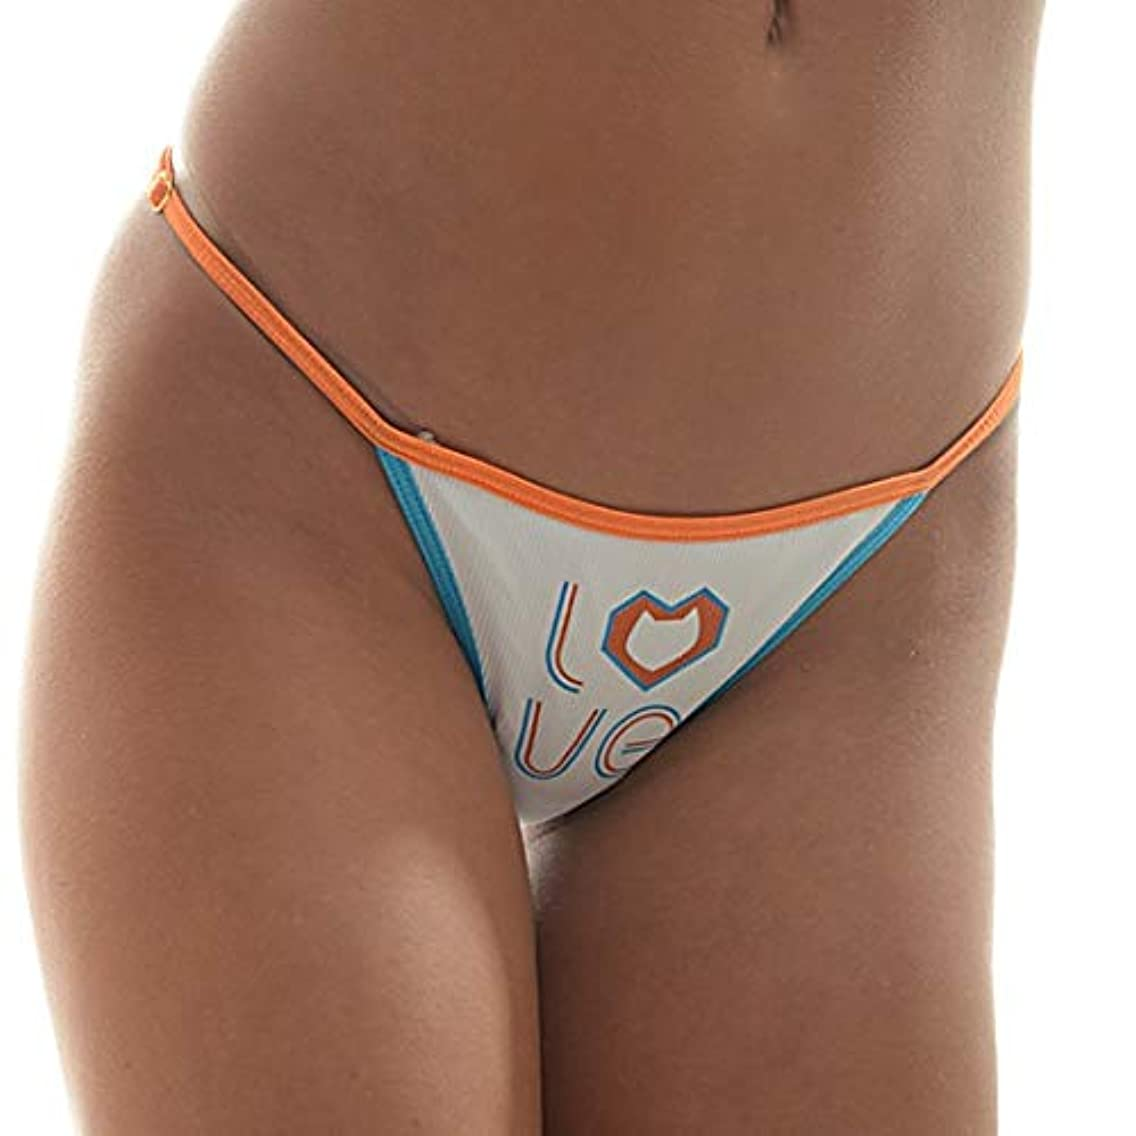 P POPPYDIARY, Adjustable/Breathable Lightweight Thong